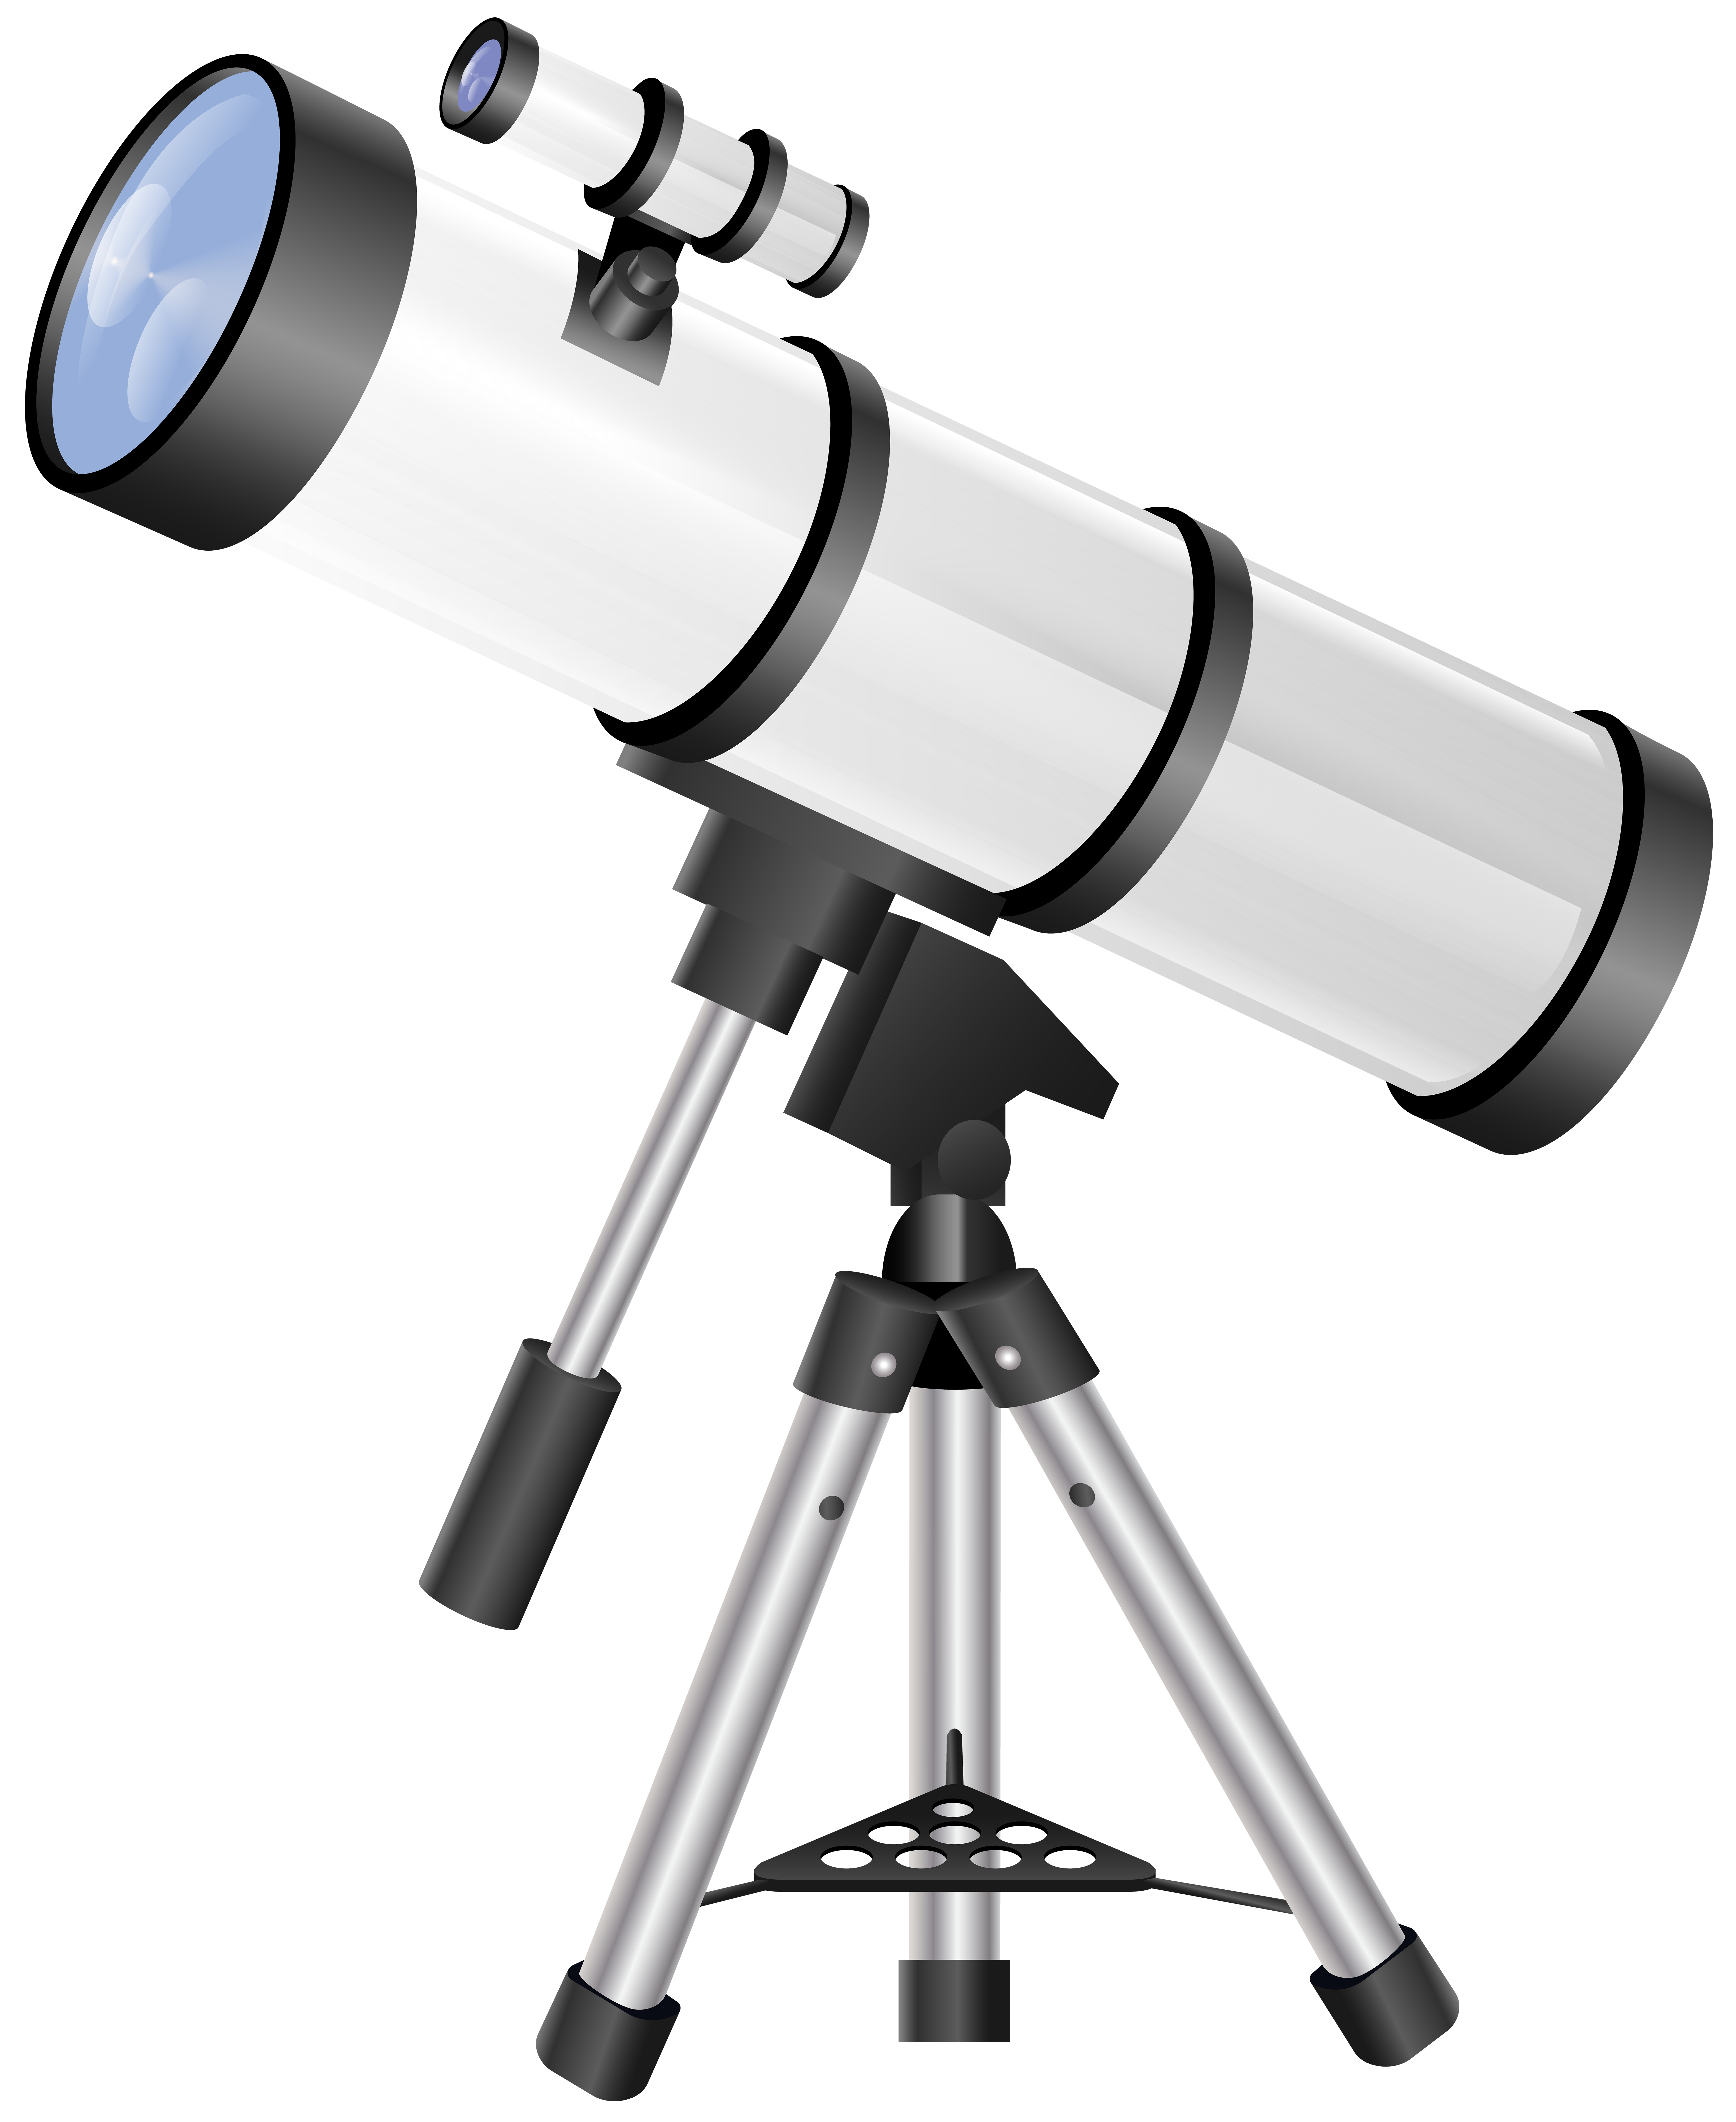 clipart black and white library Telescope clipart. Transparent png clip art.